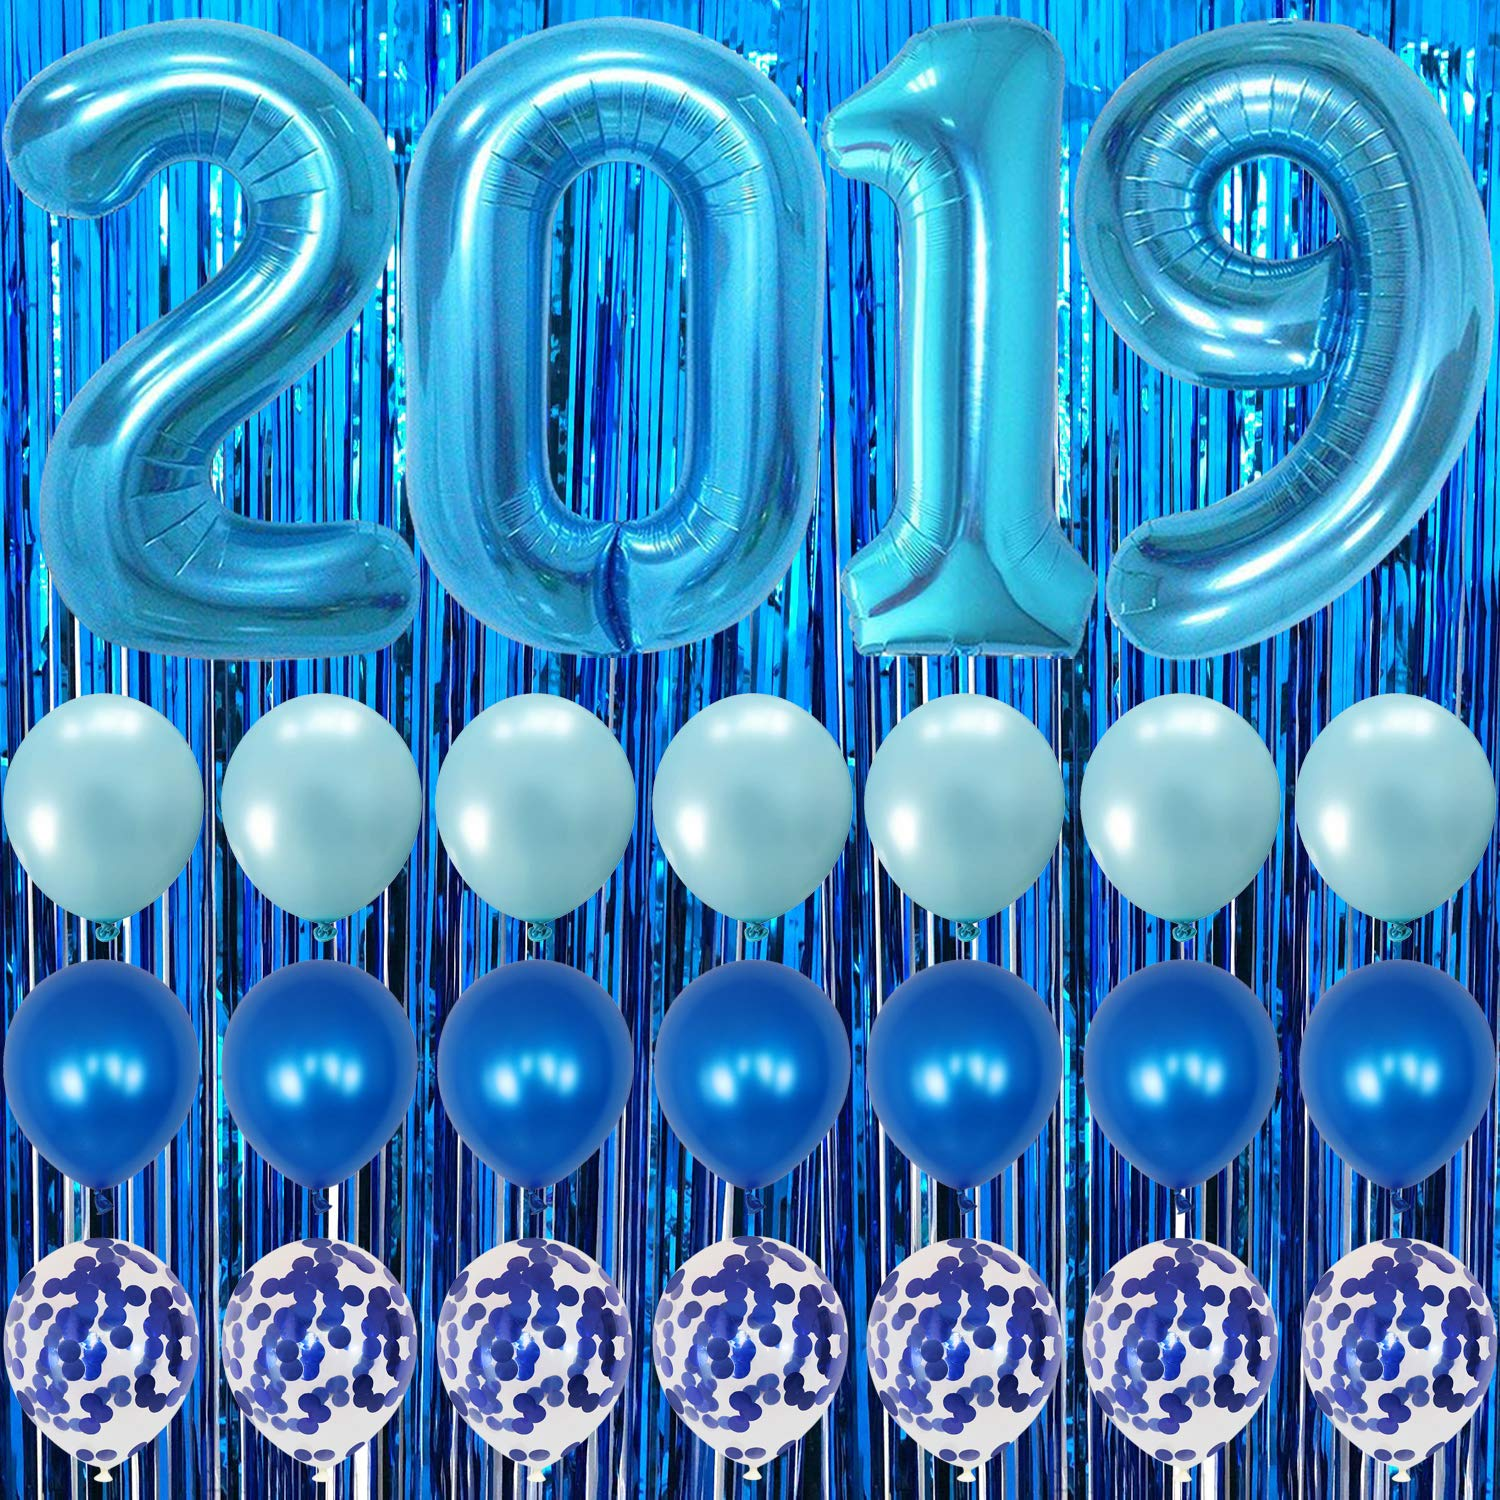 Blue Graduation Party Supplies 2019 - Blue Foil Fringe Curtain Backdrop | Large Blue 2019 Balloons | 7 Blue Confetti Balloons | 7 Blue Latex Balloons | 2019 Graduation Decorations Blue and White